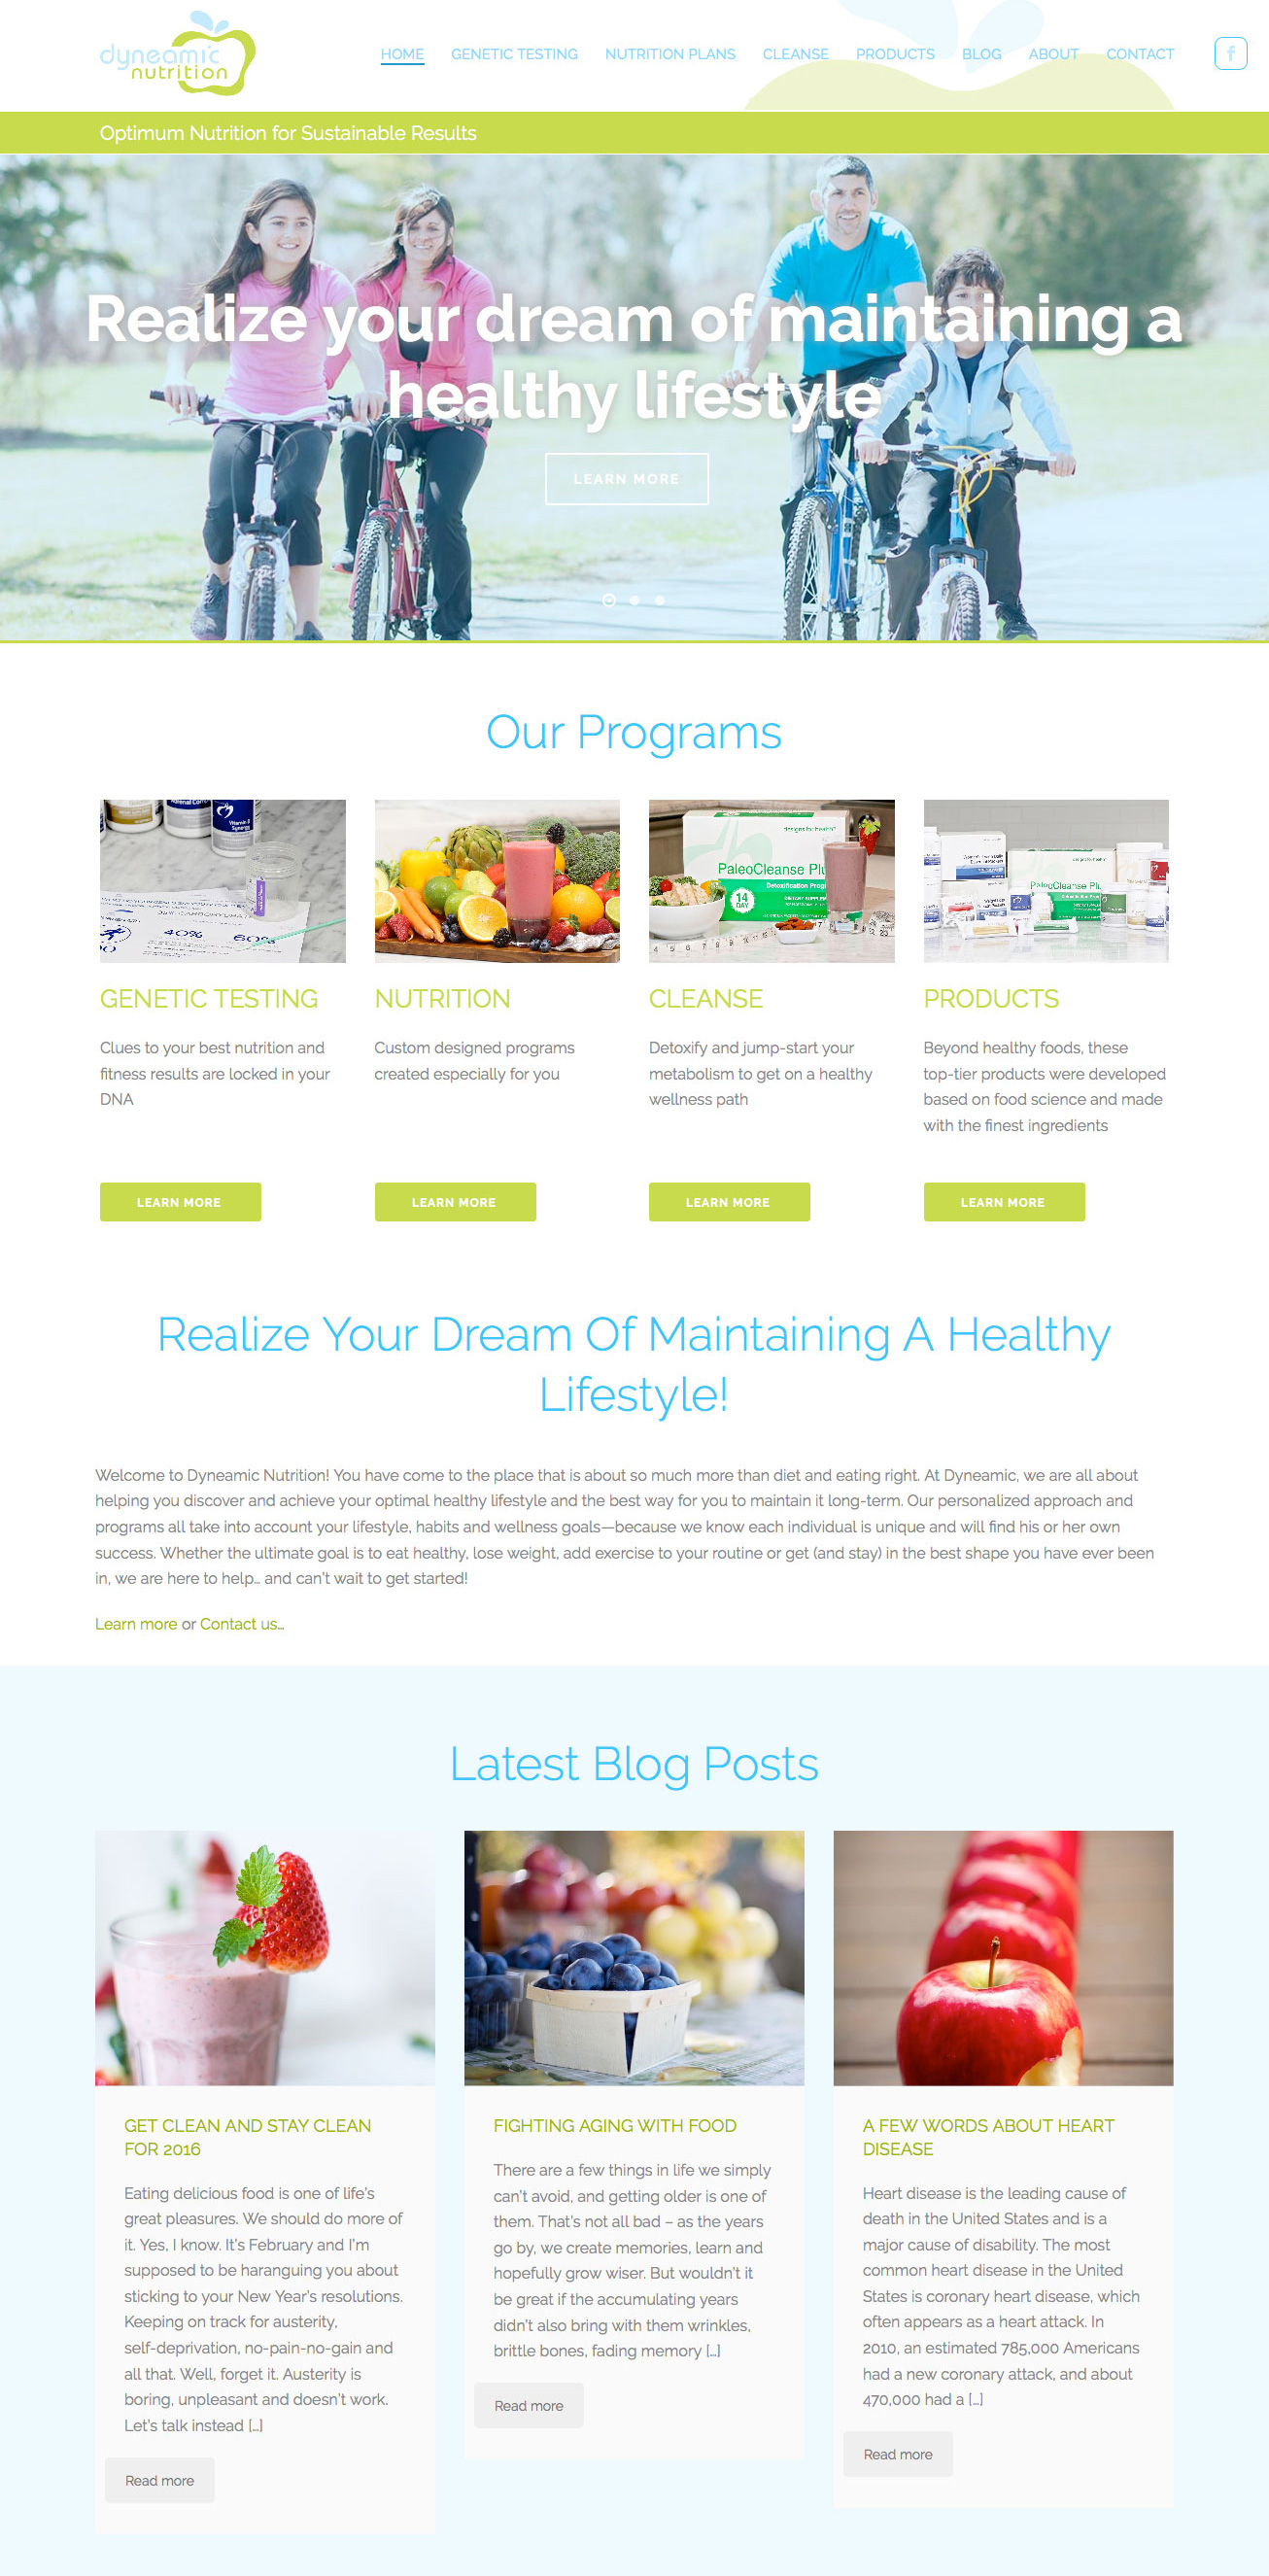 Dyneamic Nutrition - After Redesign